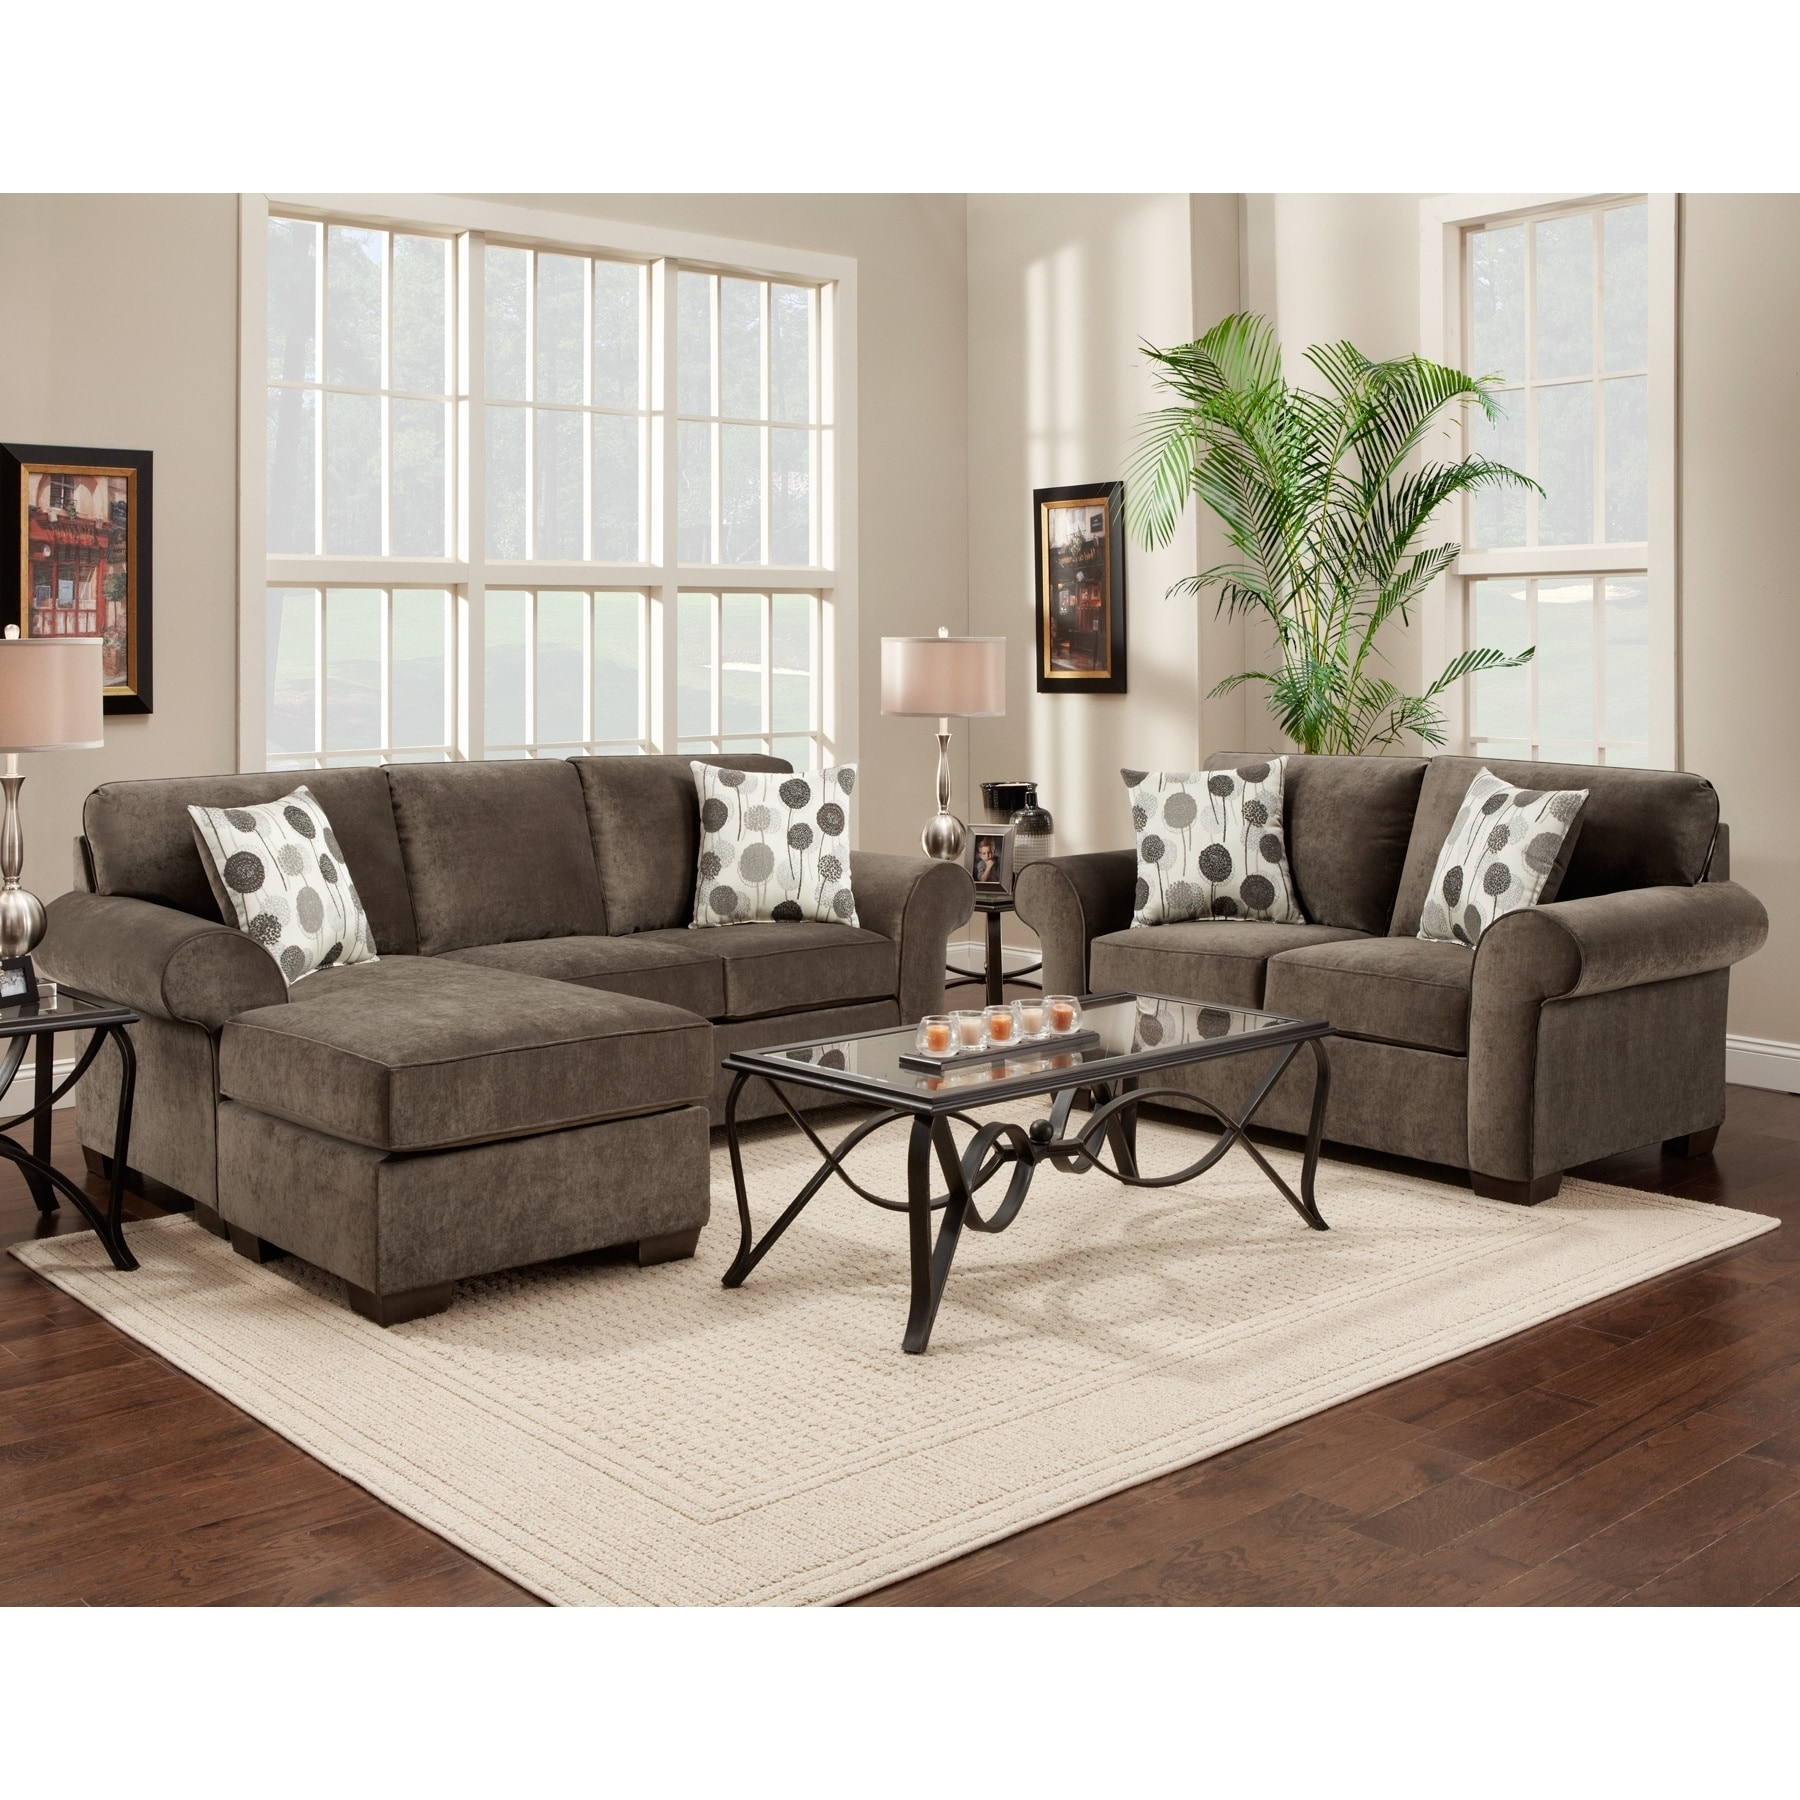 Most Recent Sectional Loveseat – Tidex With Regard To Turdur 2 Piece Sectionals With Laf Loveseat (View 9 of 20)